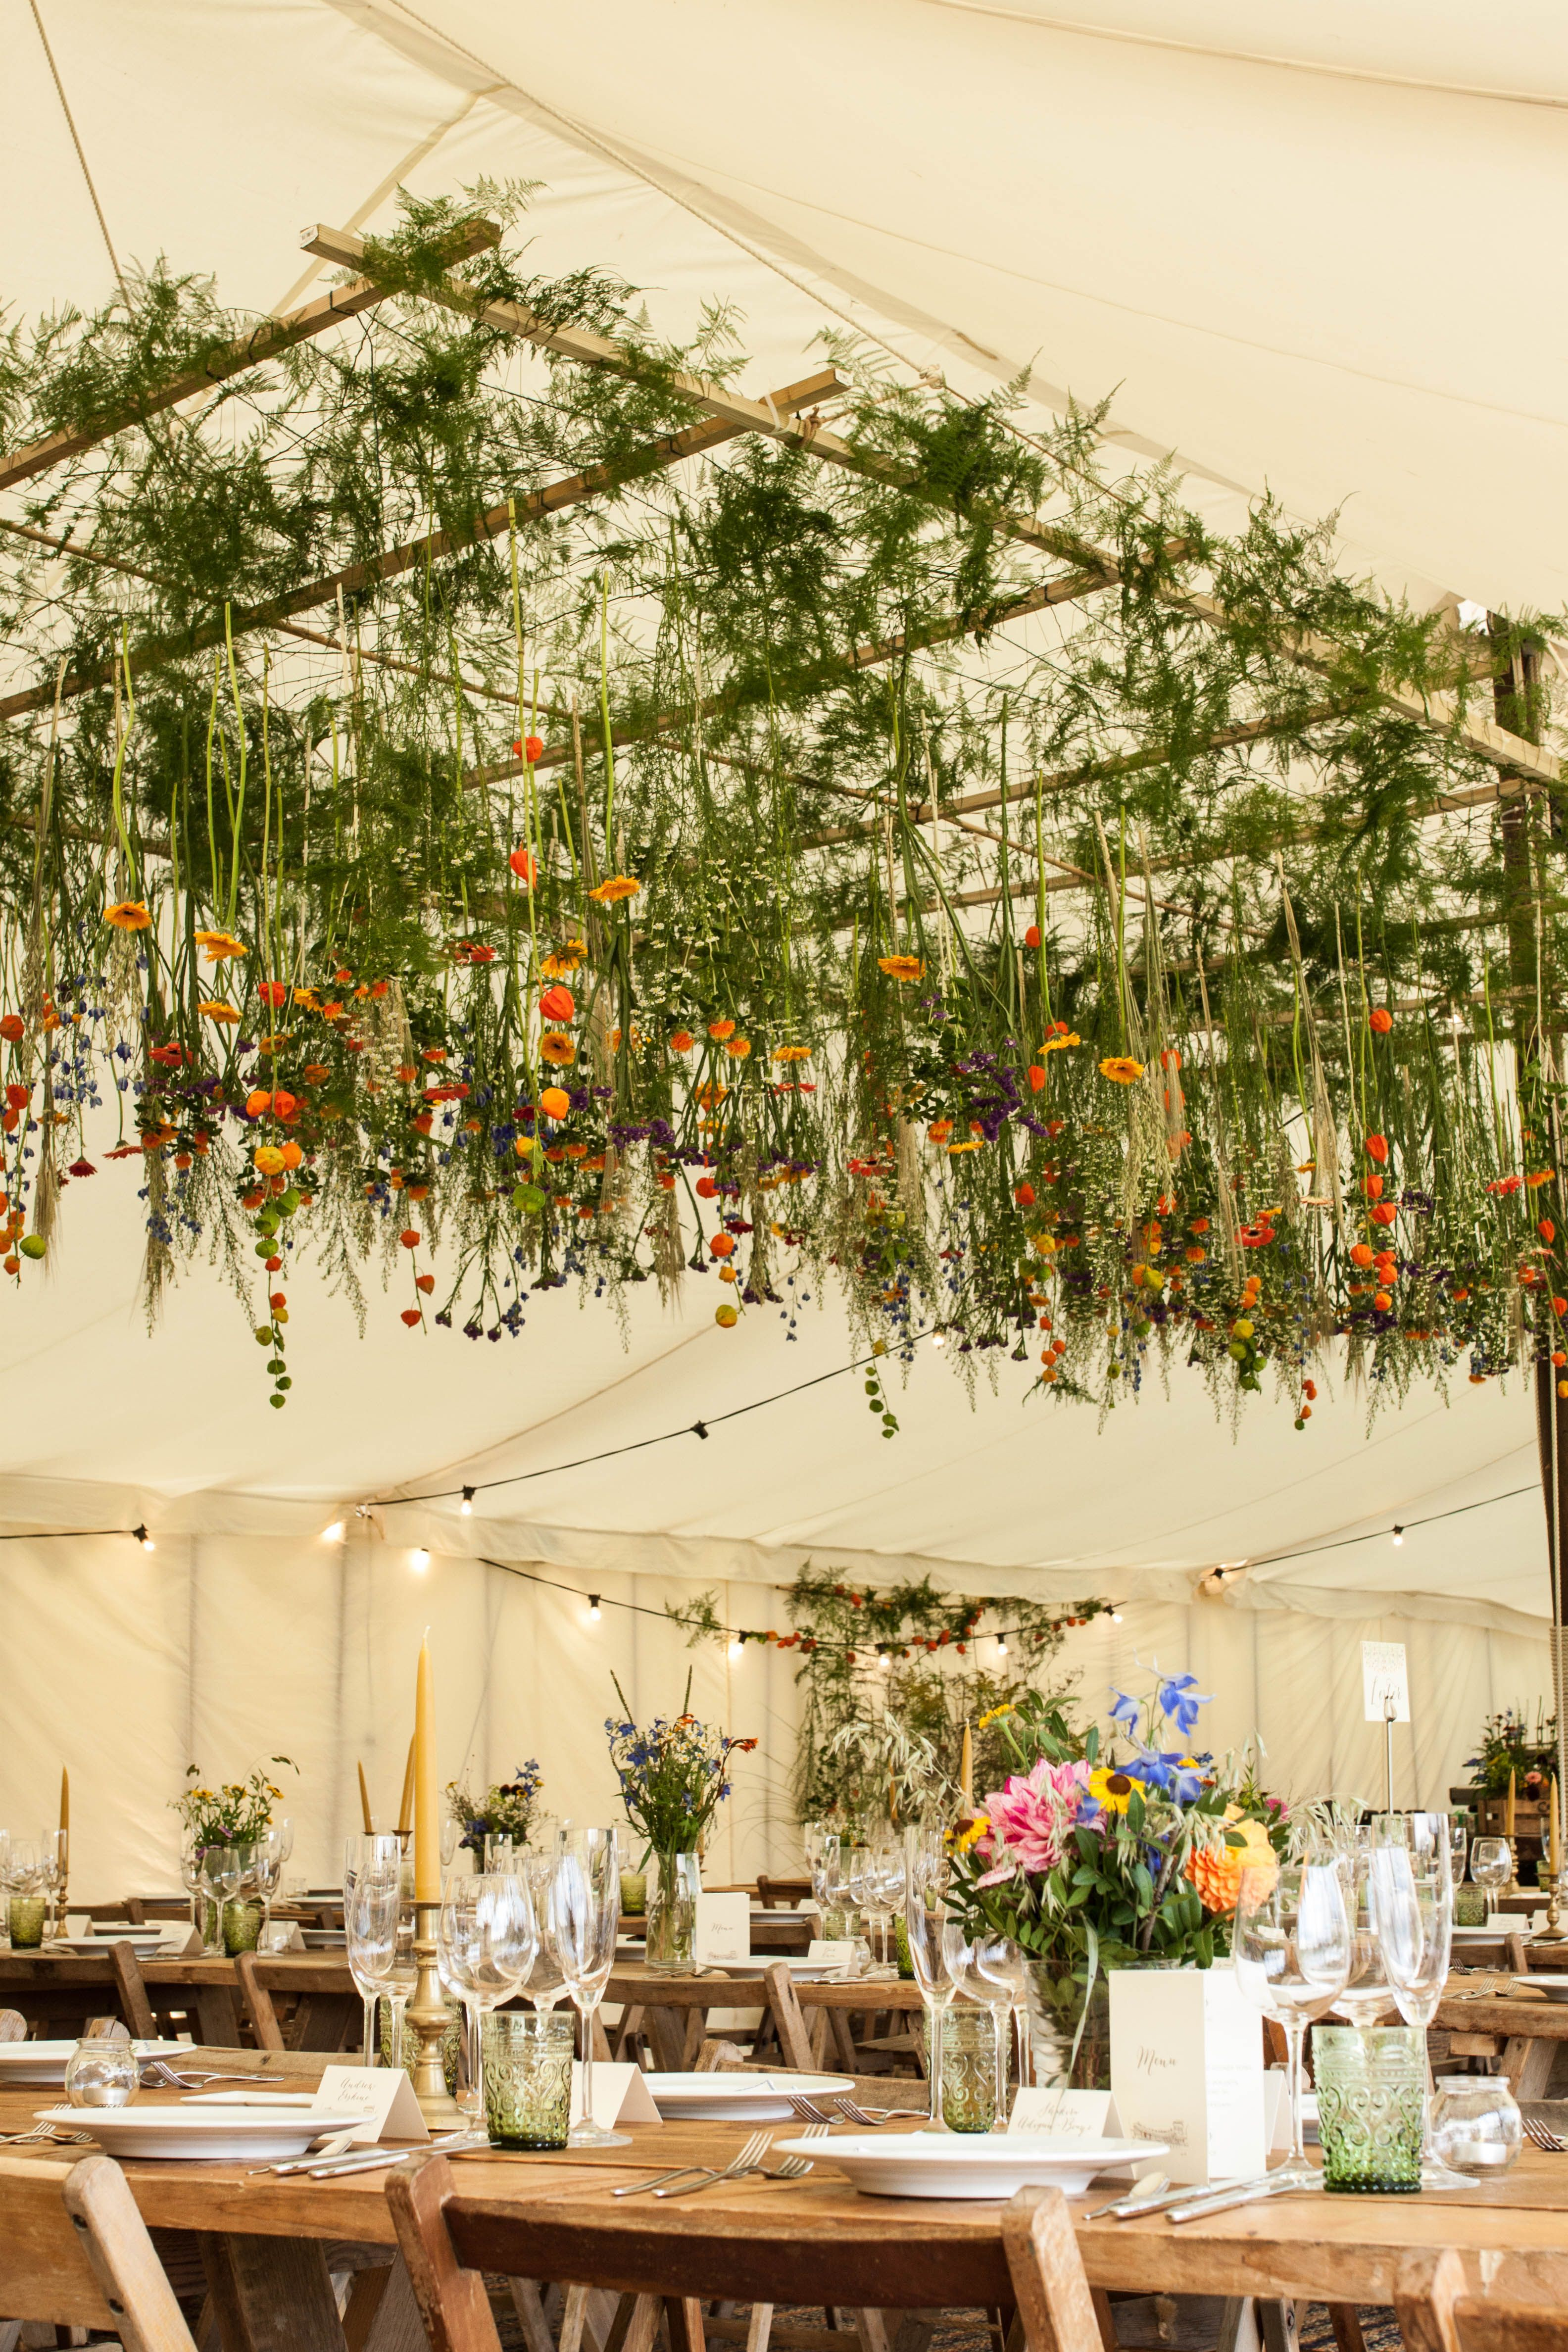 Hanging floral display within our Traditional Tent by Mathew Oliver //. & Hanging floral display within our Traditional Tent by Mathew ...